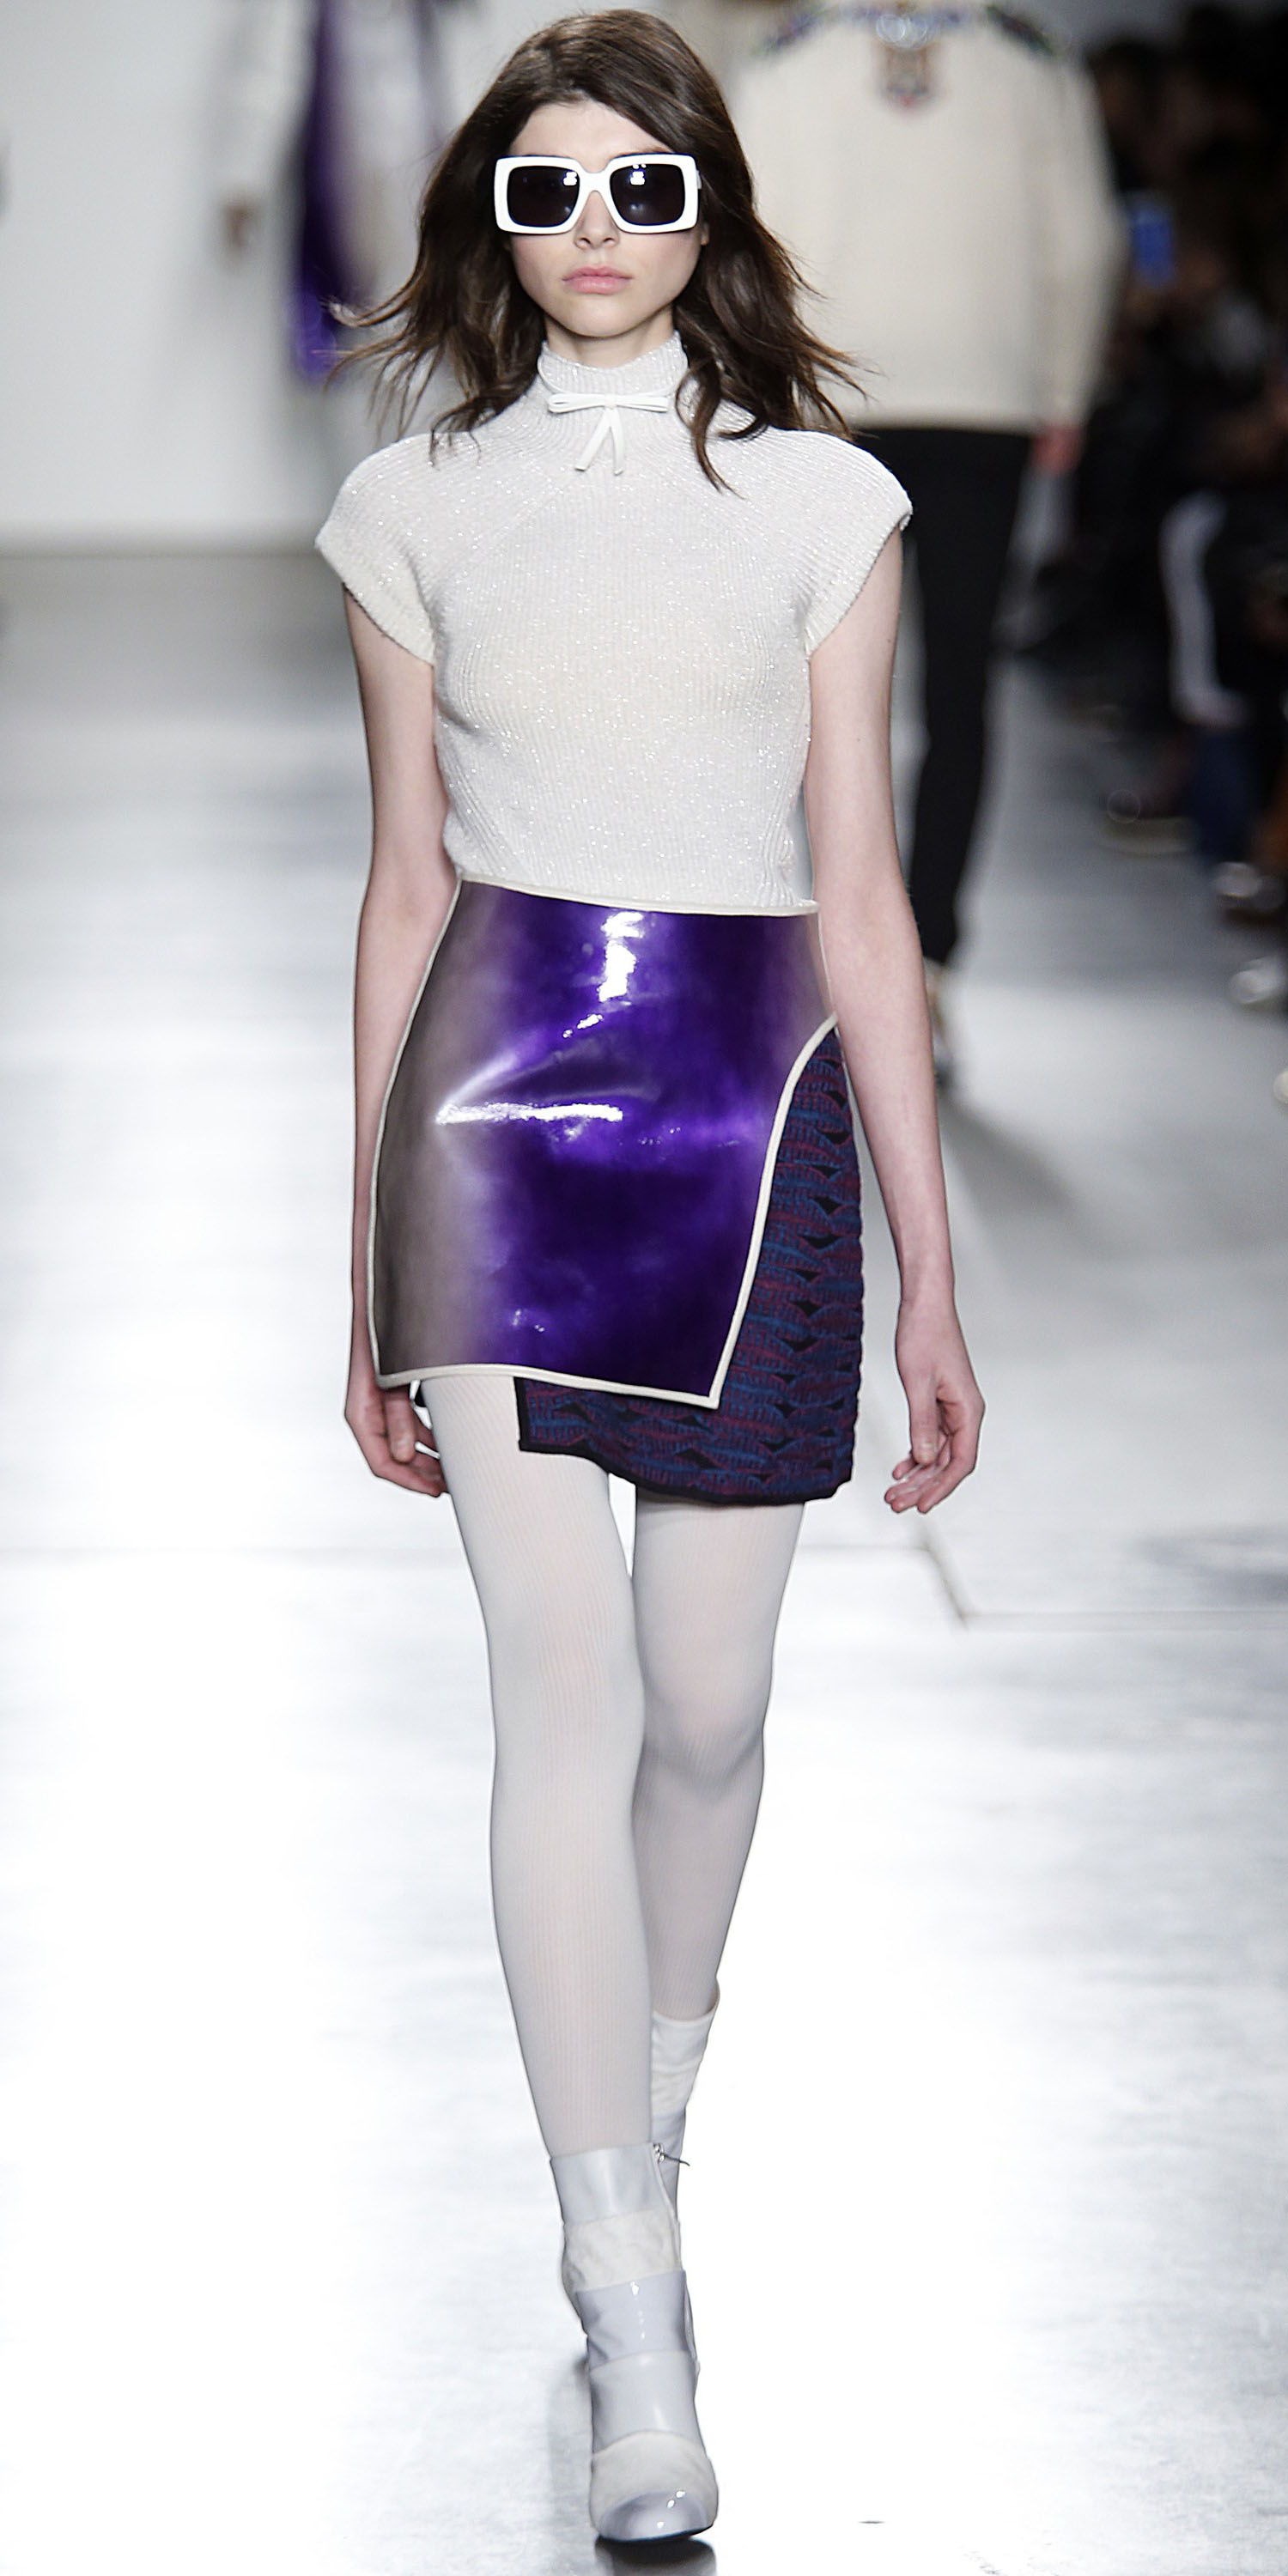 purple-royal-mini-skirt-white-top-sun-white-tights-white-shoe-booties-spring-summer-brun-lunch.jpg